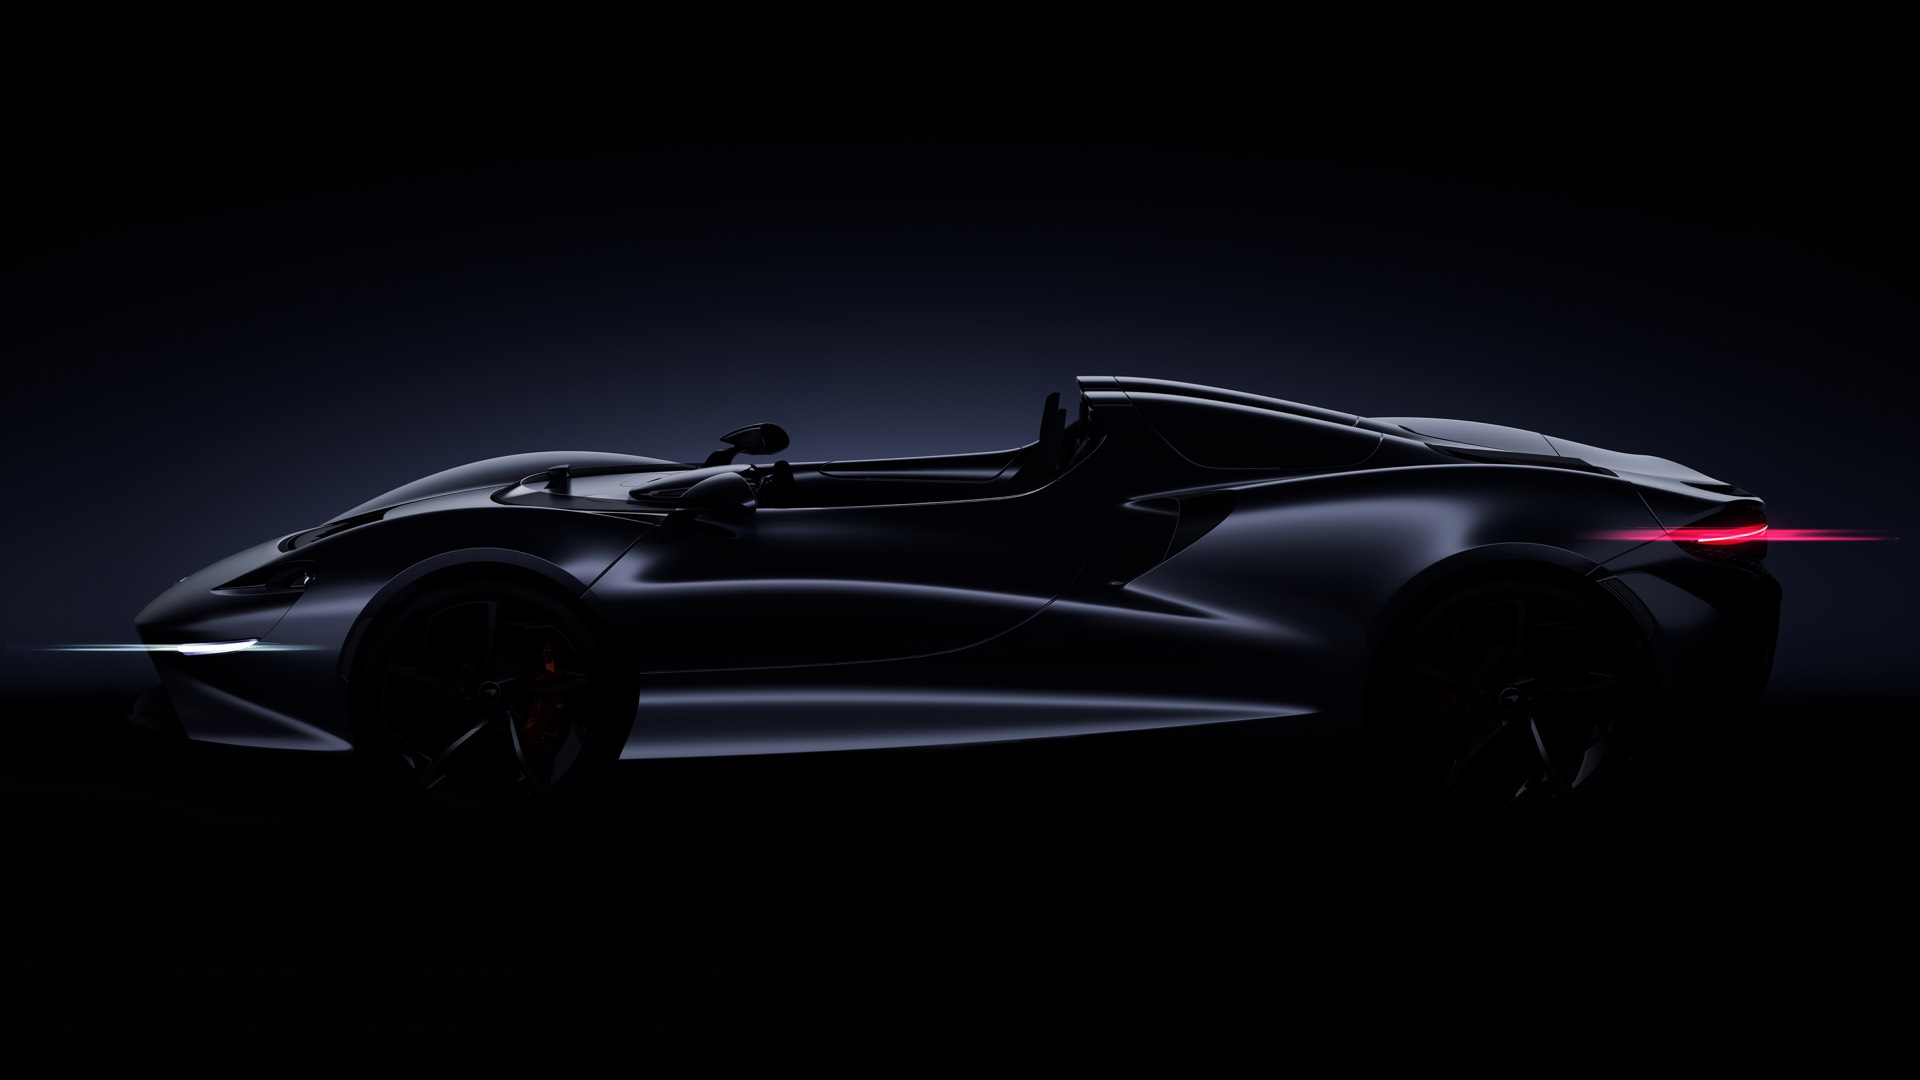 McLaren Reveals New Ultimate Series Model at Pebble Beach